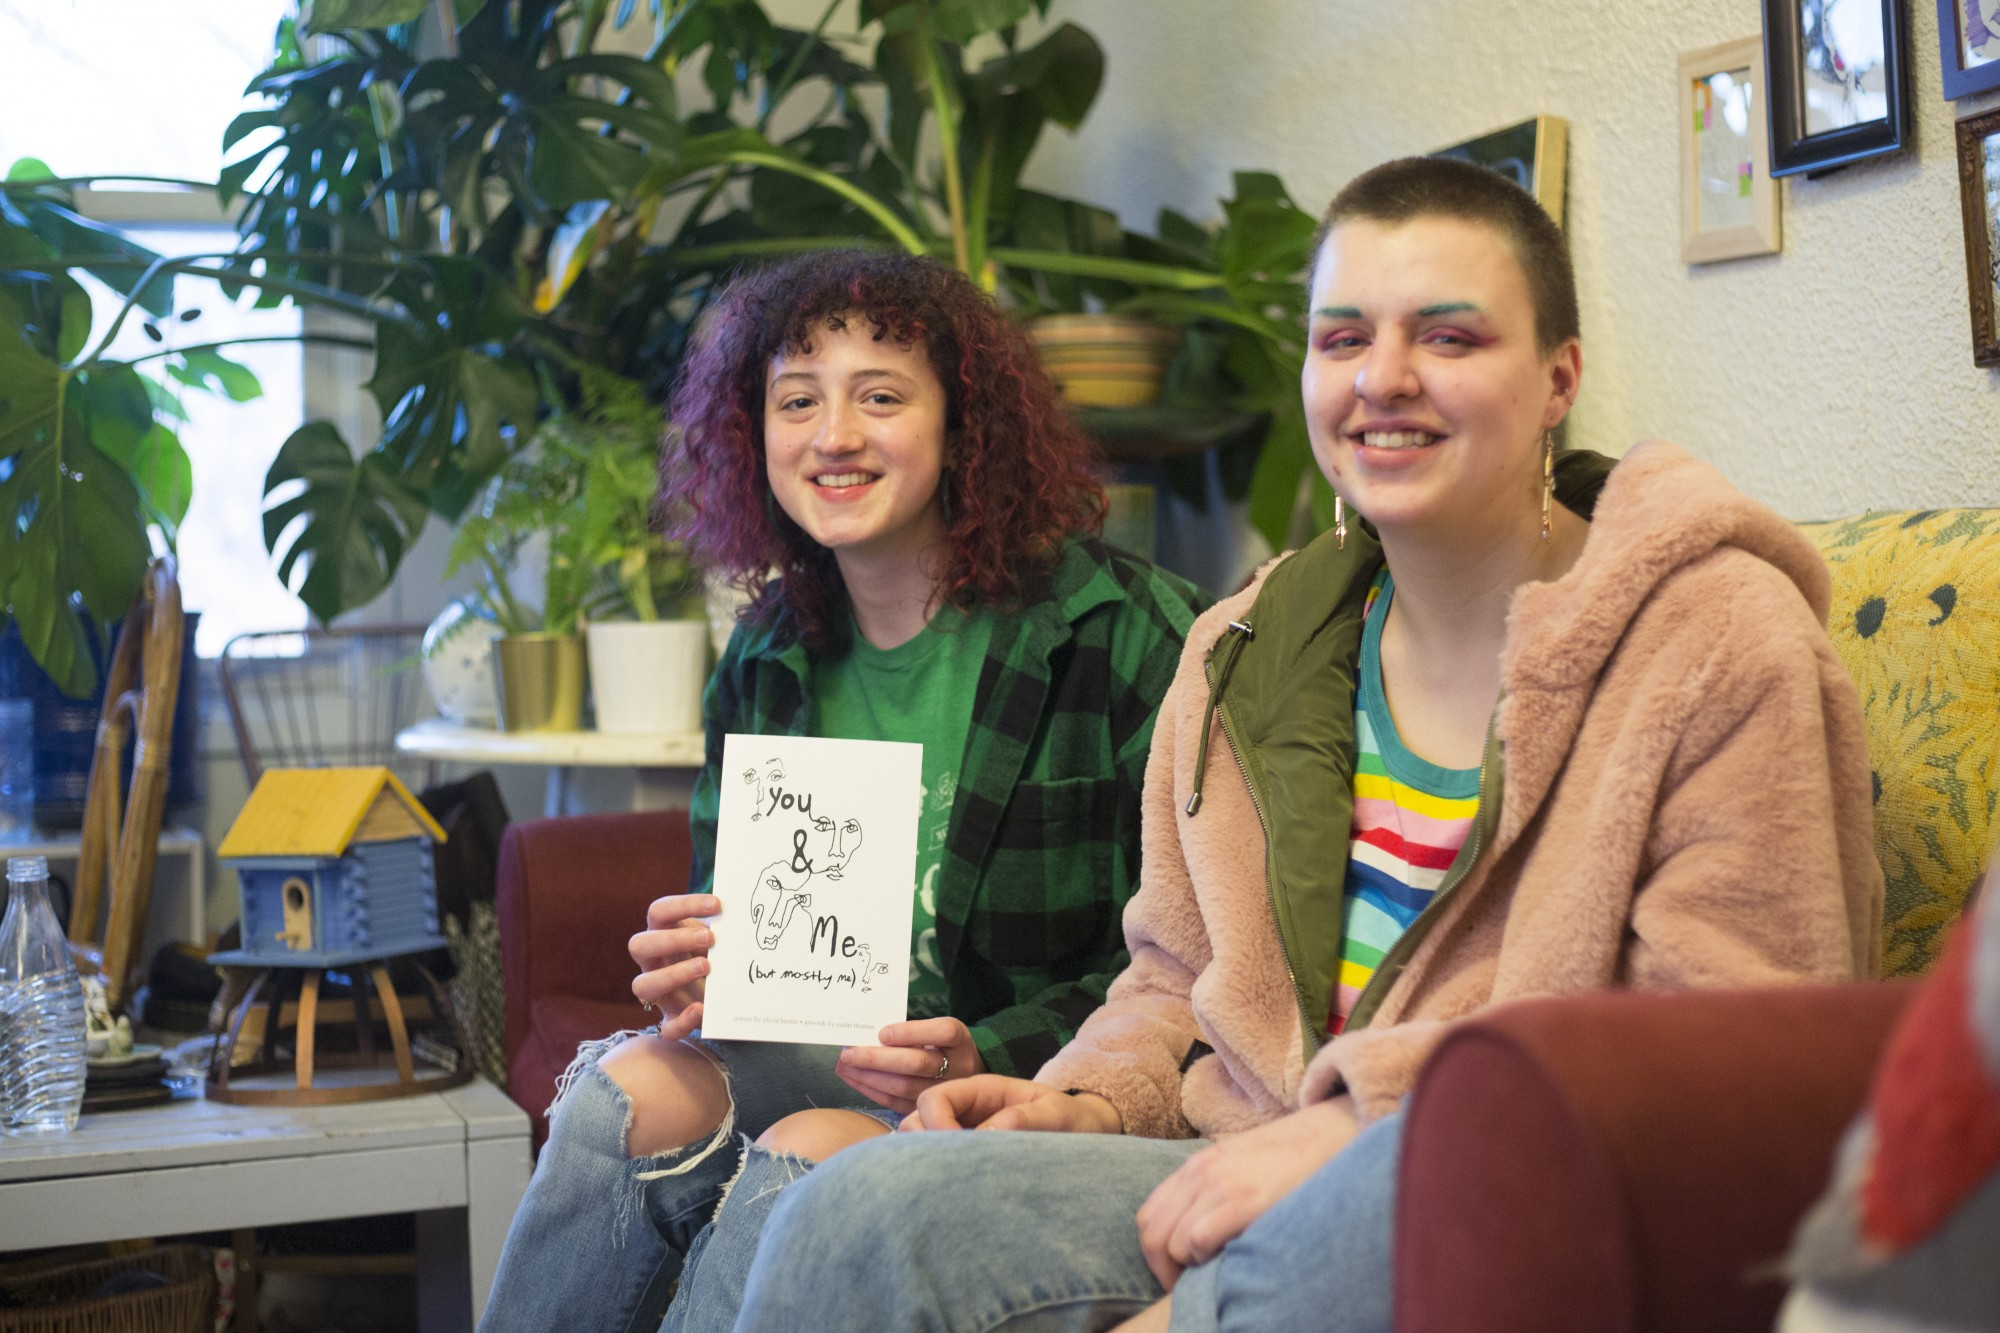 Writer Olivia Baxter, left, and Artist Cedar Thomas pose with their newly published book of poems entitled You and Me (But Mostly Me). The book features poetry by Baxter coupled with illustrations by Thomas.